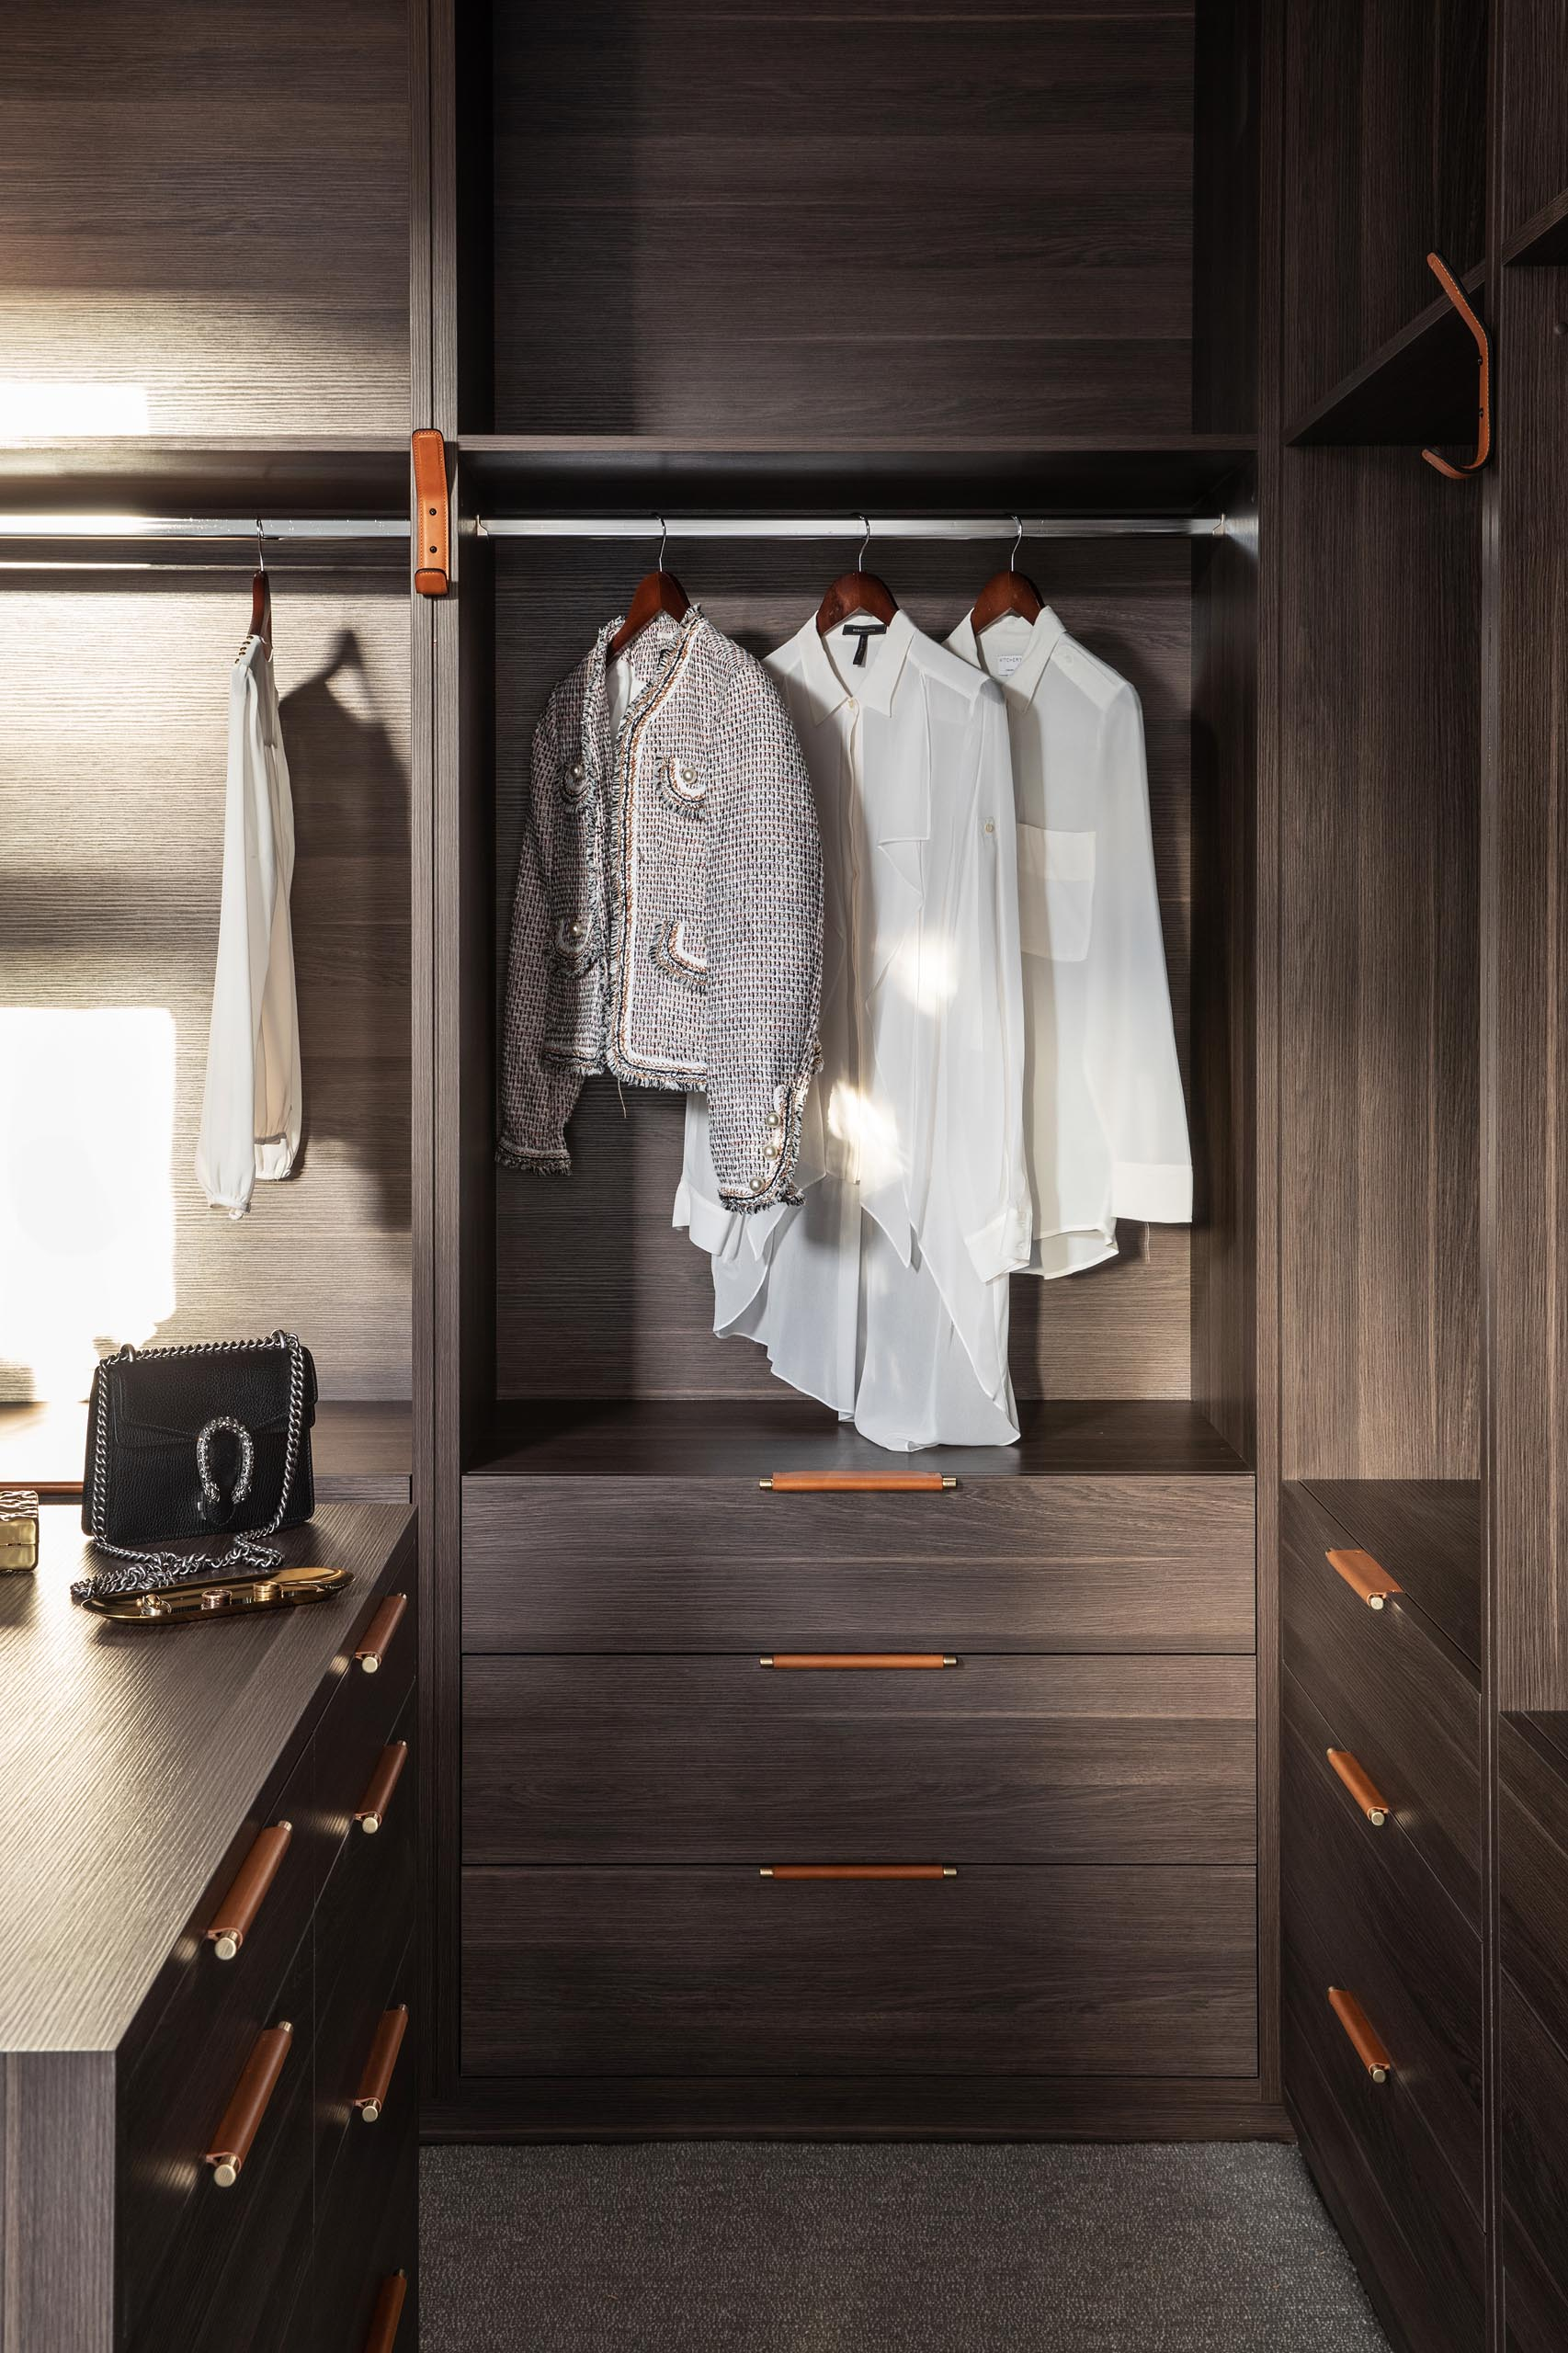 A modern walk-in closet showcases dark wood cabinetry with metal and leather drawer pulls.